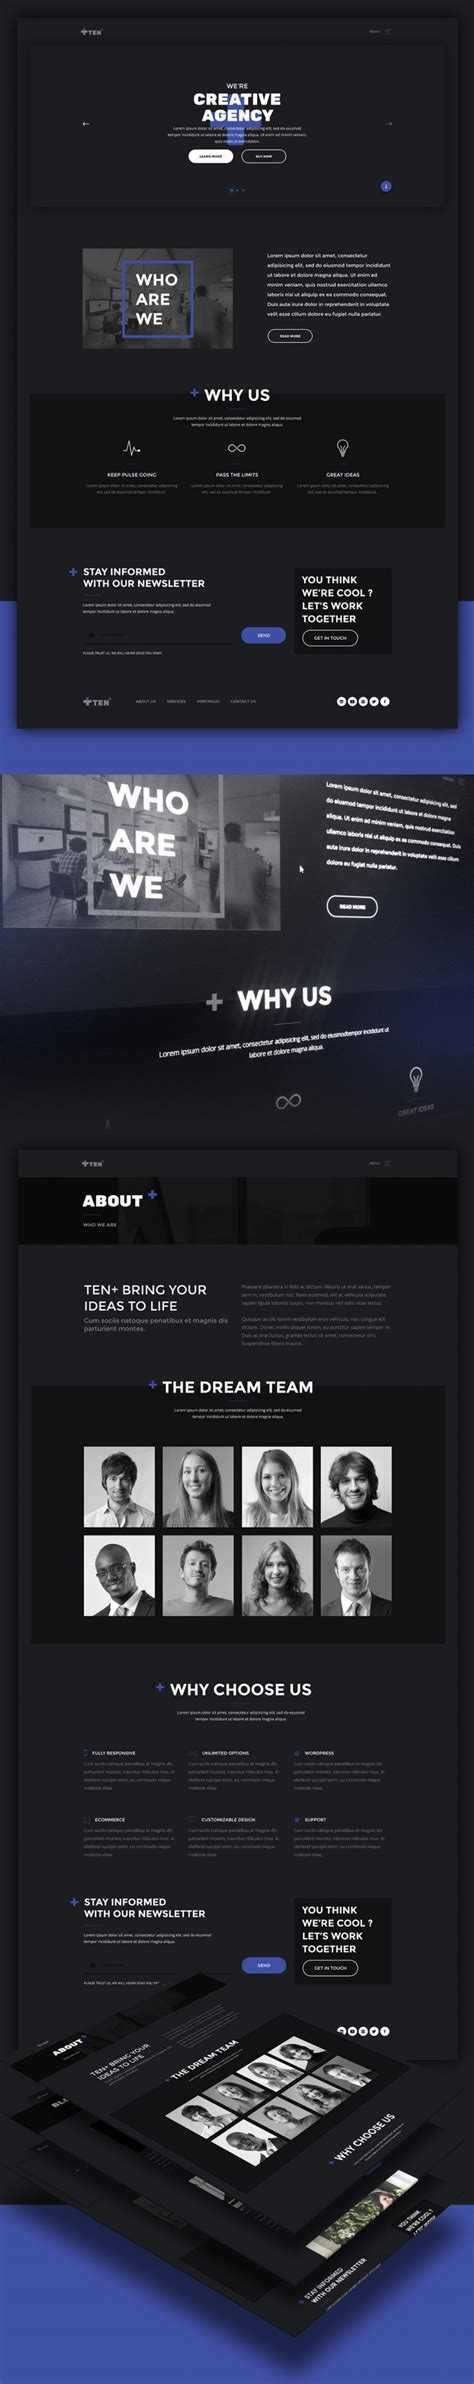 Creative Digital Agencies Website Templates Free Psd Set Download Download Psd Digital Agency Website Templates